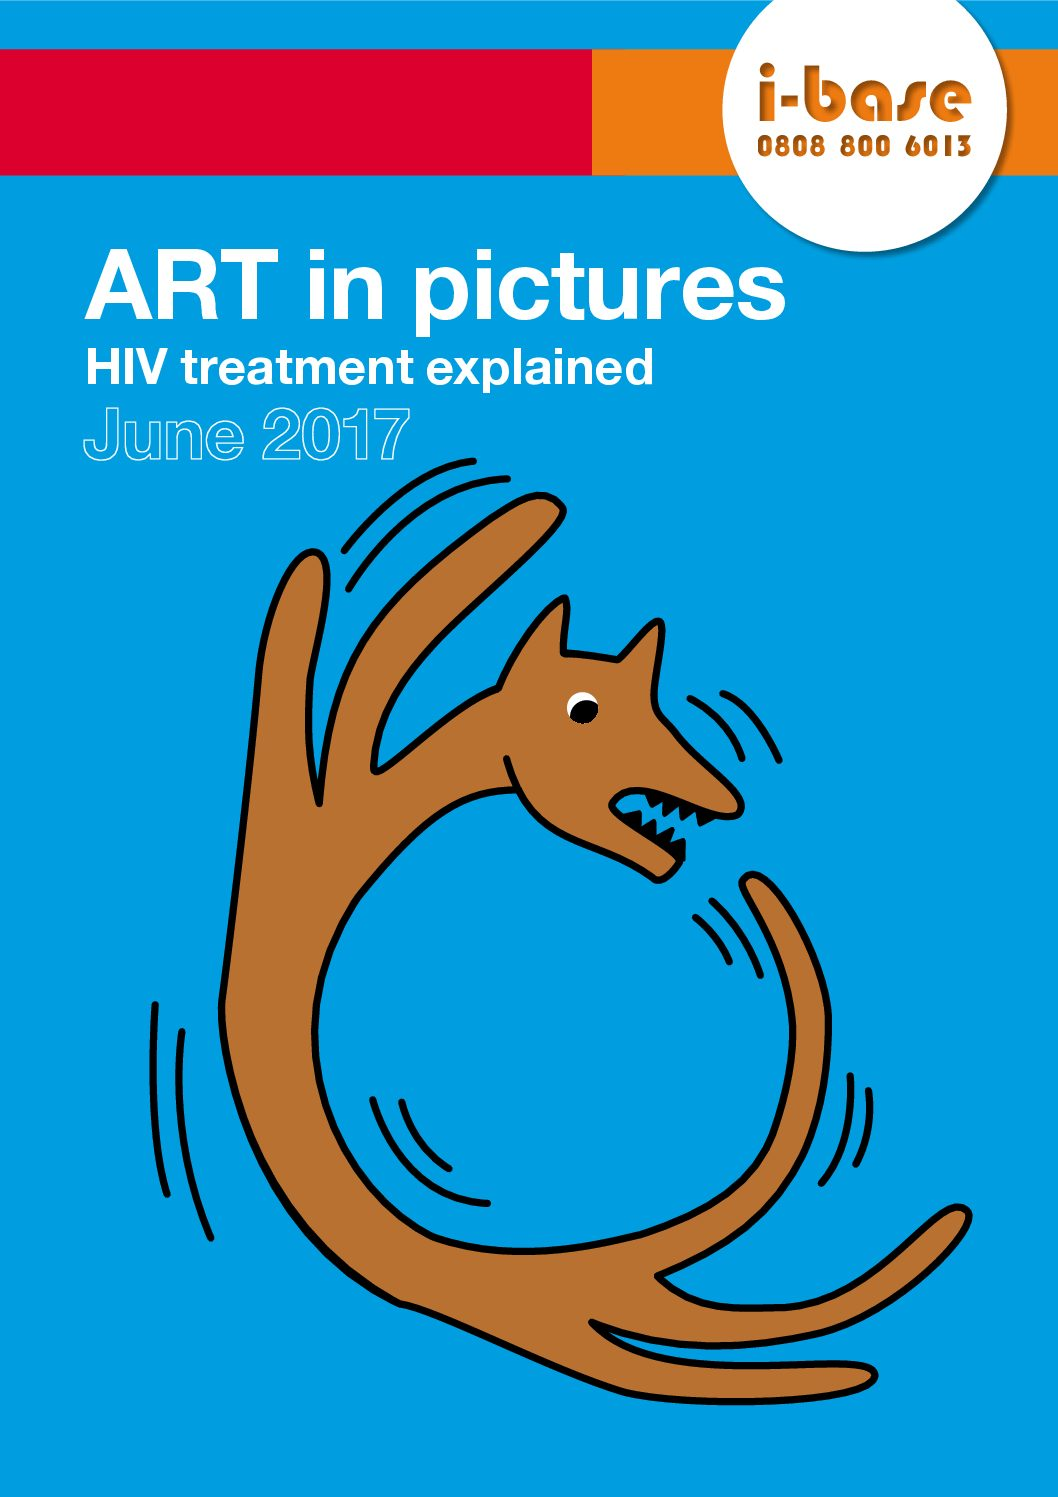 ART in pictures. HIV treatment explained